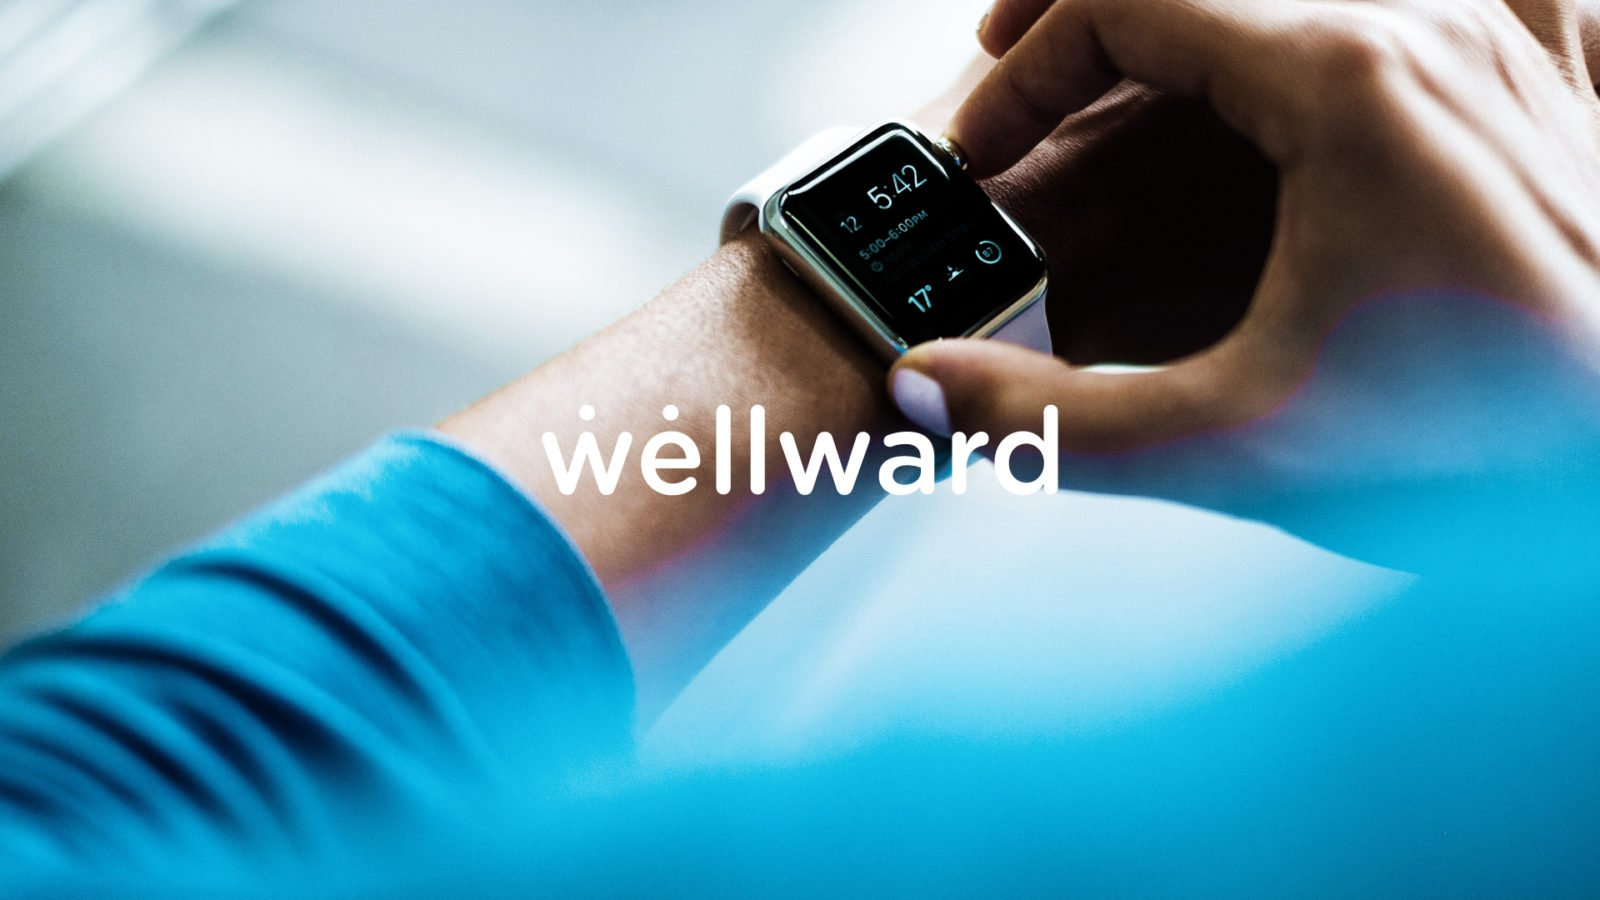 A Brand Identity for Wellward by Bullhorn Creative